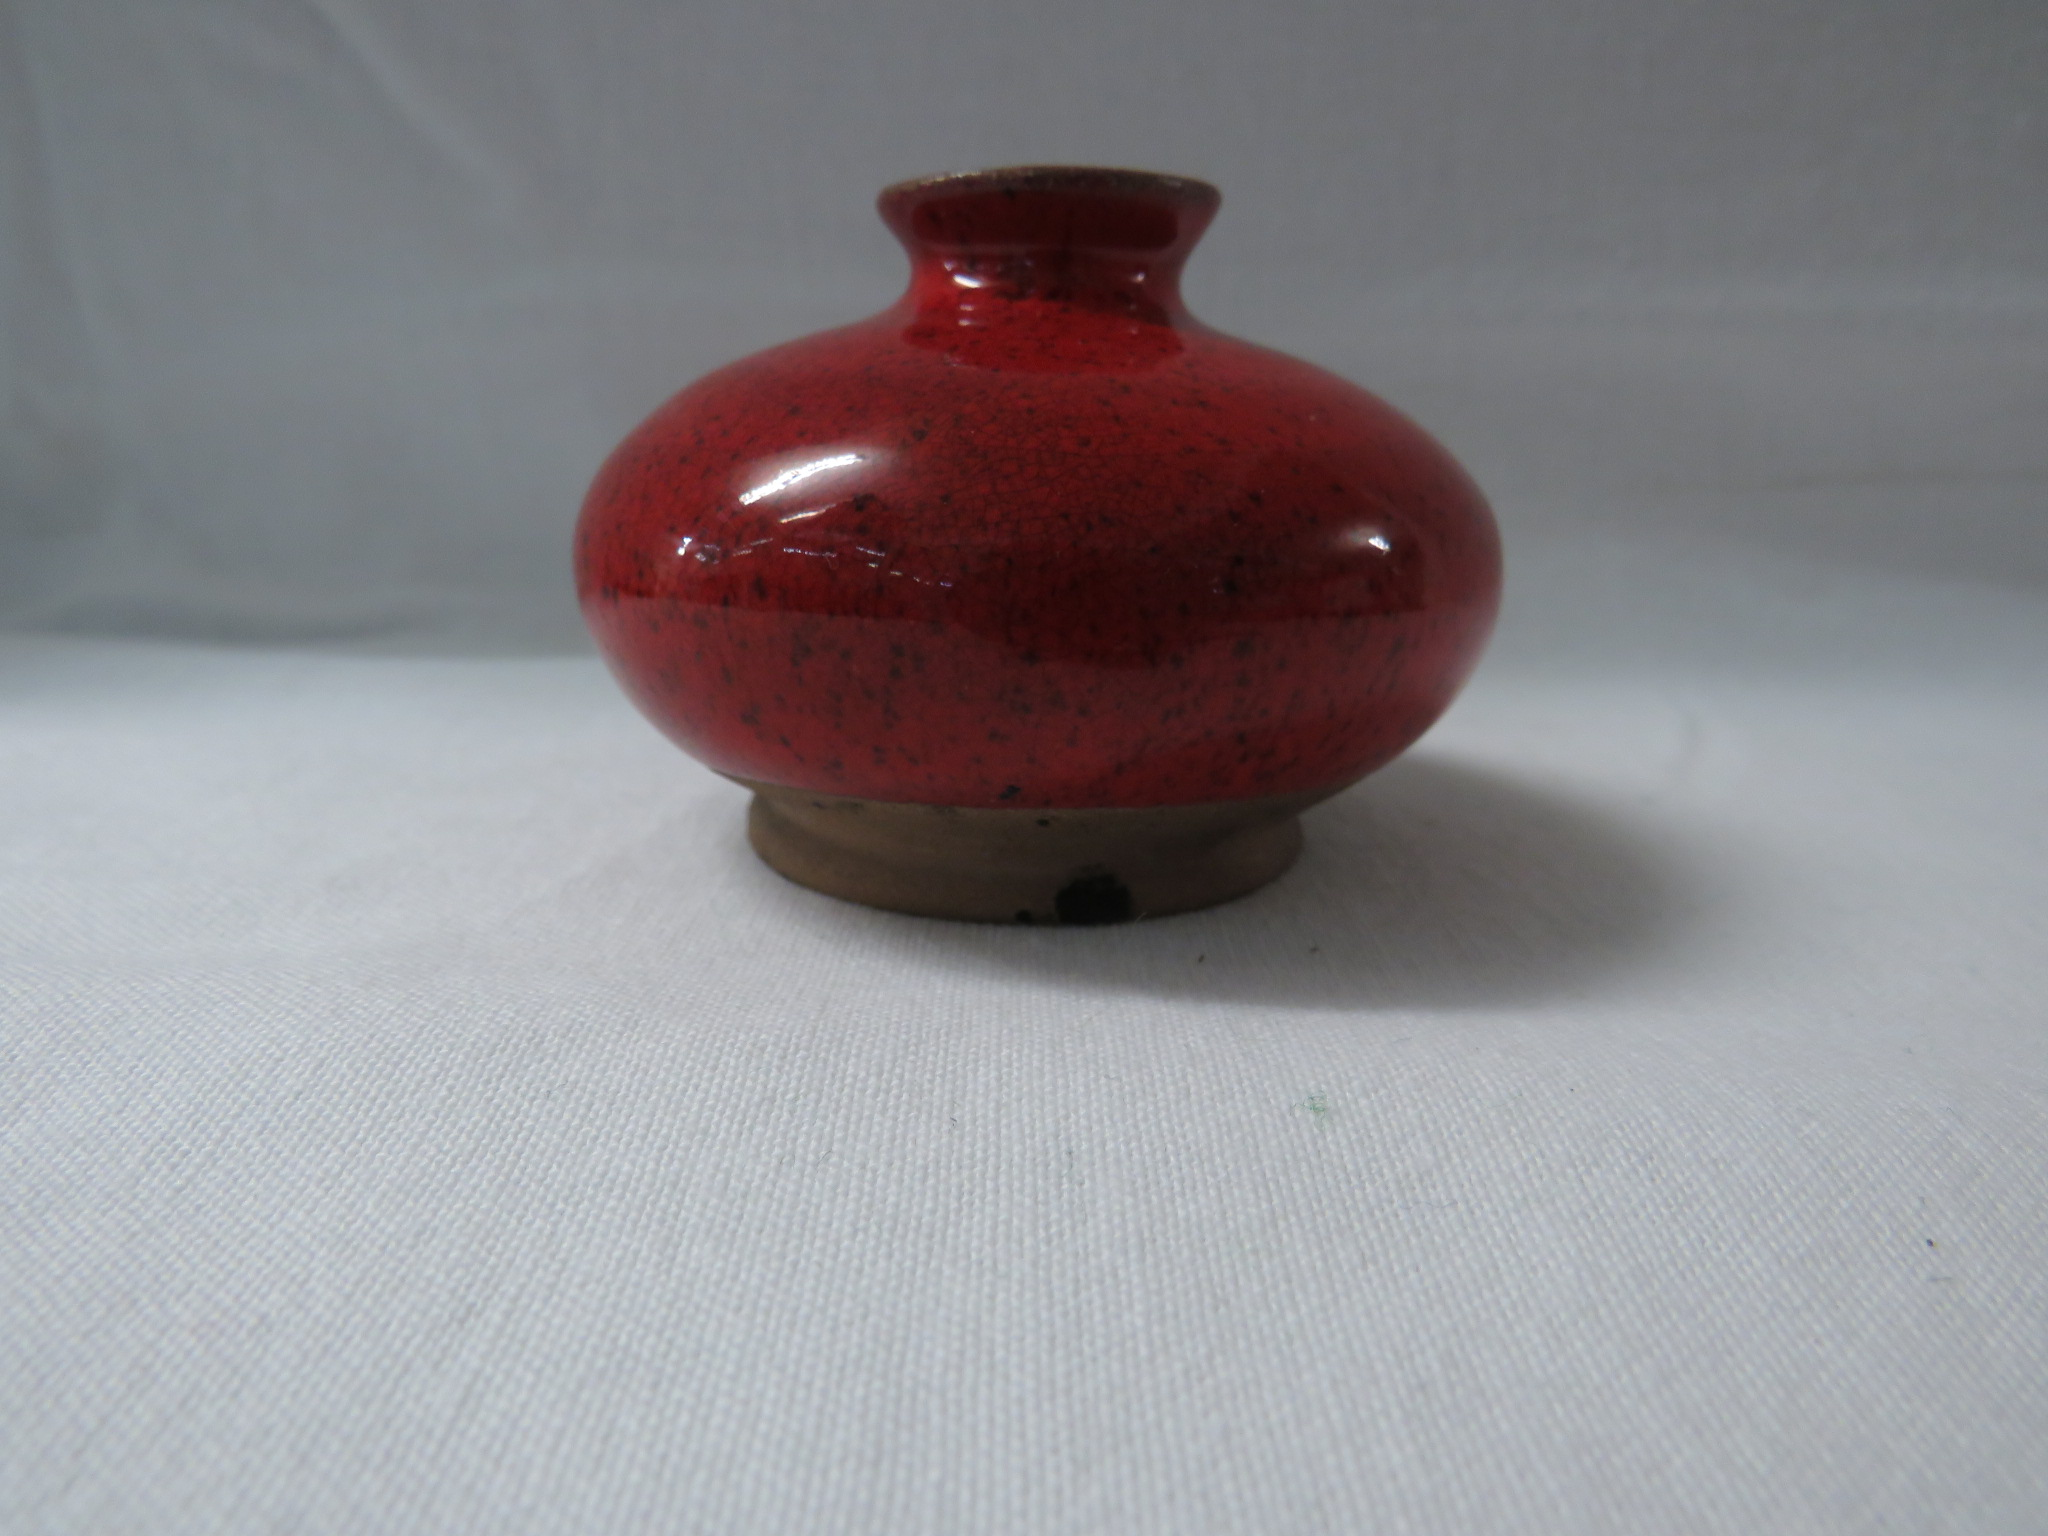 Lot 34 - A Ming style terracotta vase or pot of squat form in a bright red mottled glaze falling short of the